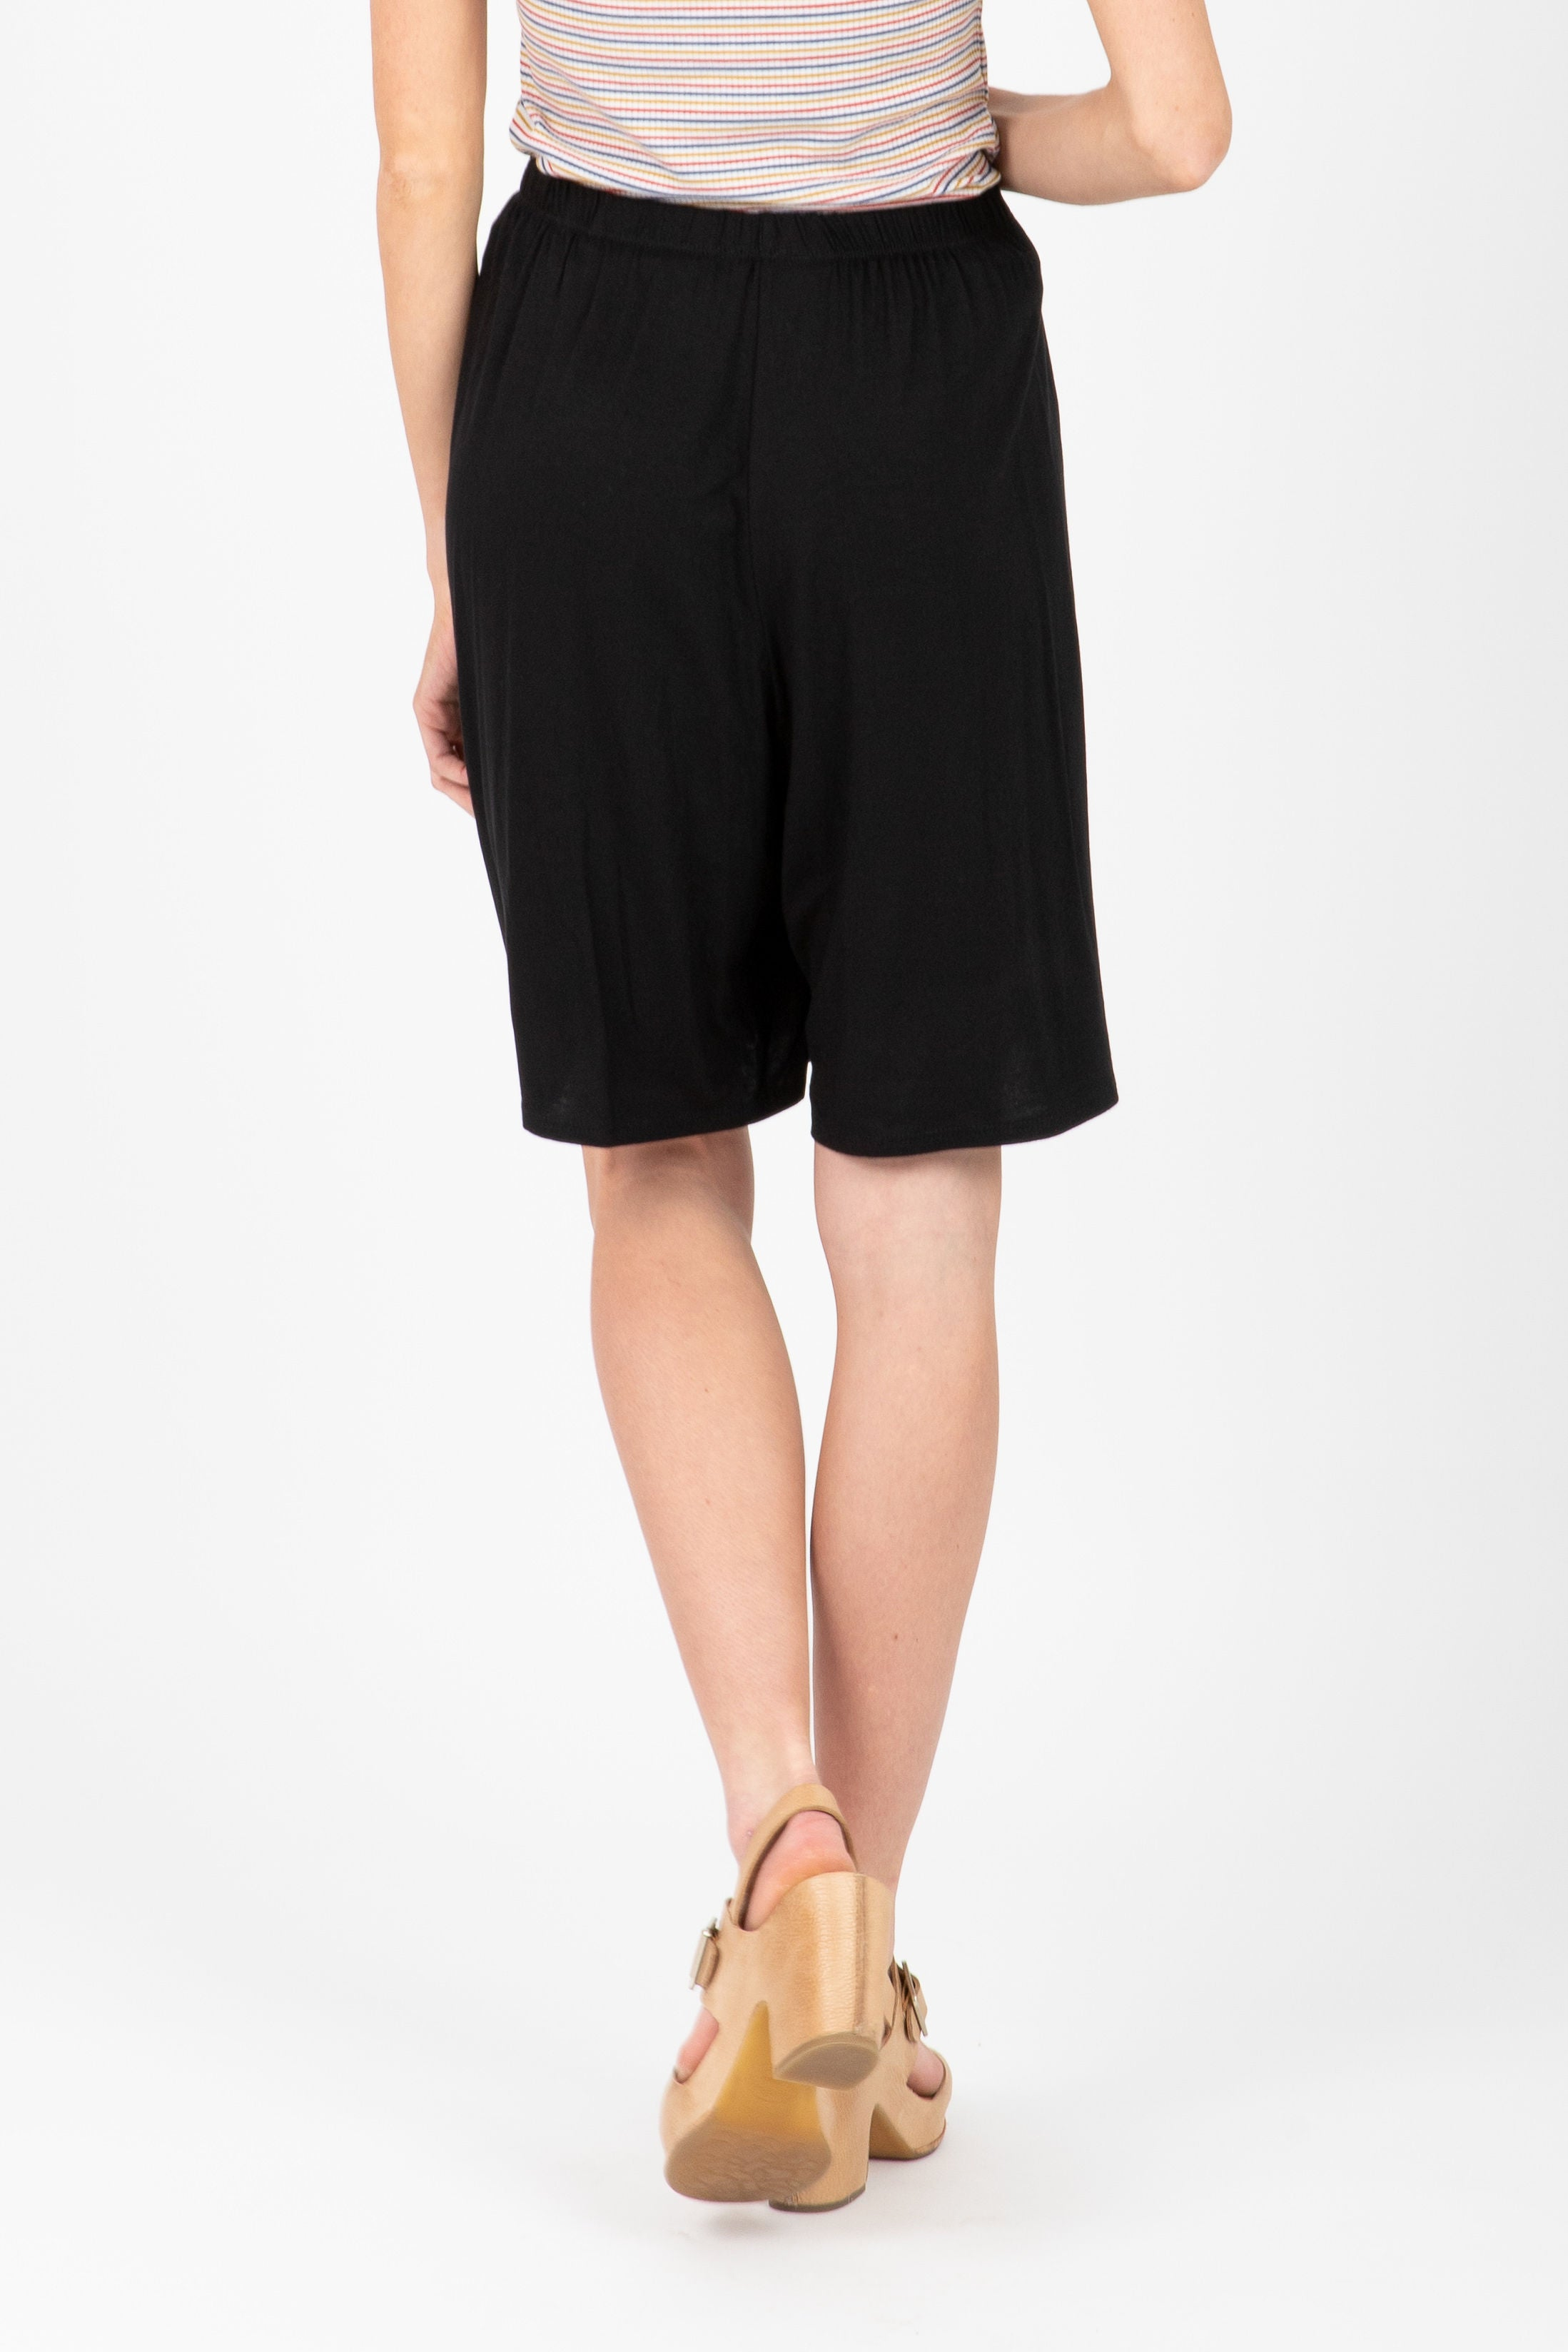 The Behave Casual Shorts in Black